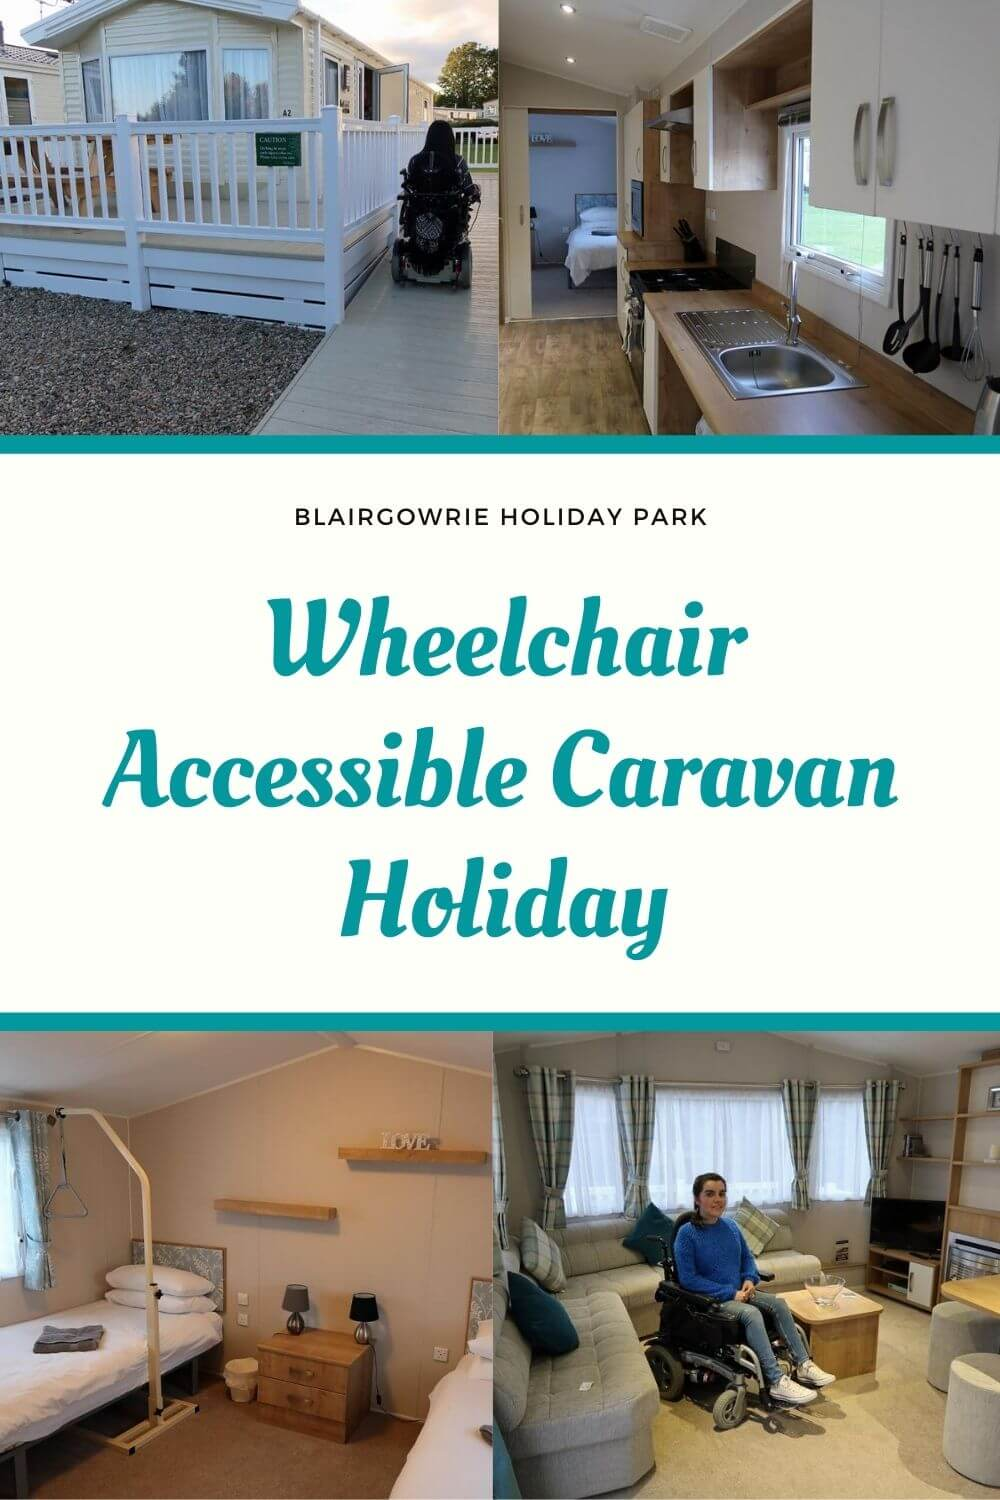 """A pinterest image showing four images. The images are of the caravan and inside the caravan. With text that reads """"Blairgowrie Holiday Park Wheelchair Accessible Caravan Holiday."""""""